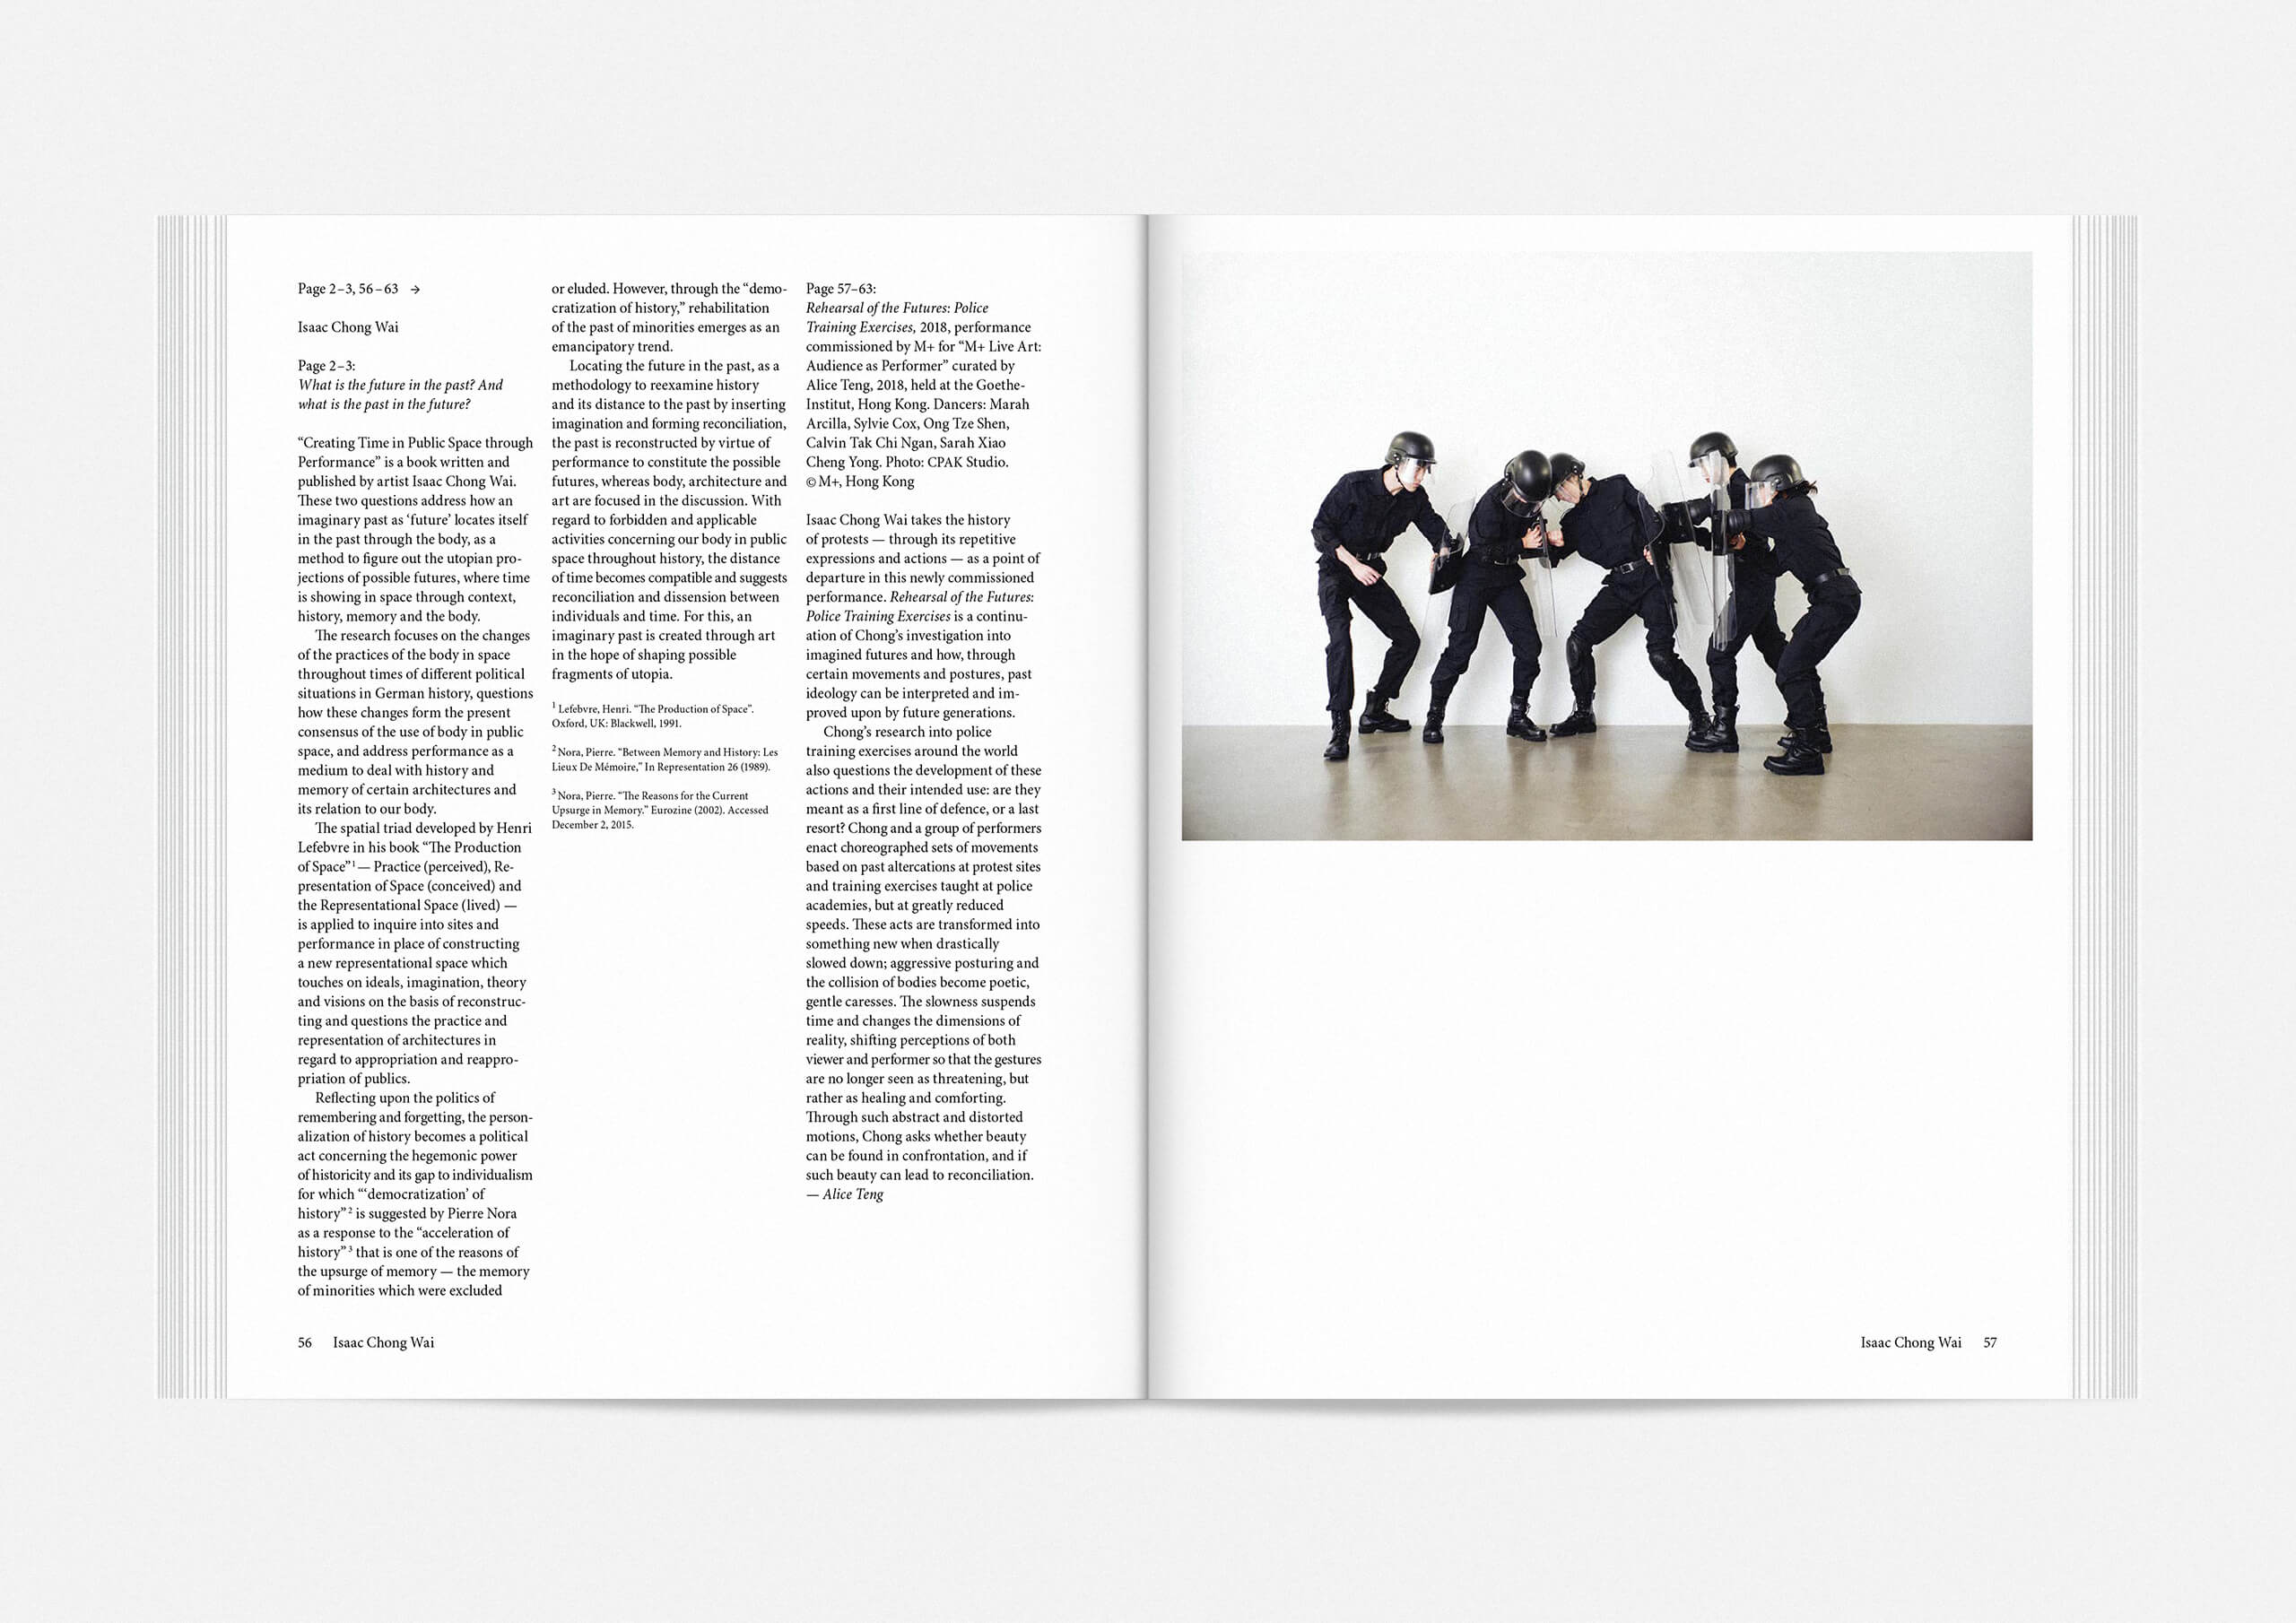 http://neuegestaltung.de/media/pages/clients/protocollum-issue-no-05/bf1dea58ab-1597415141/protocollum-5-page-5657-ng.jpg